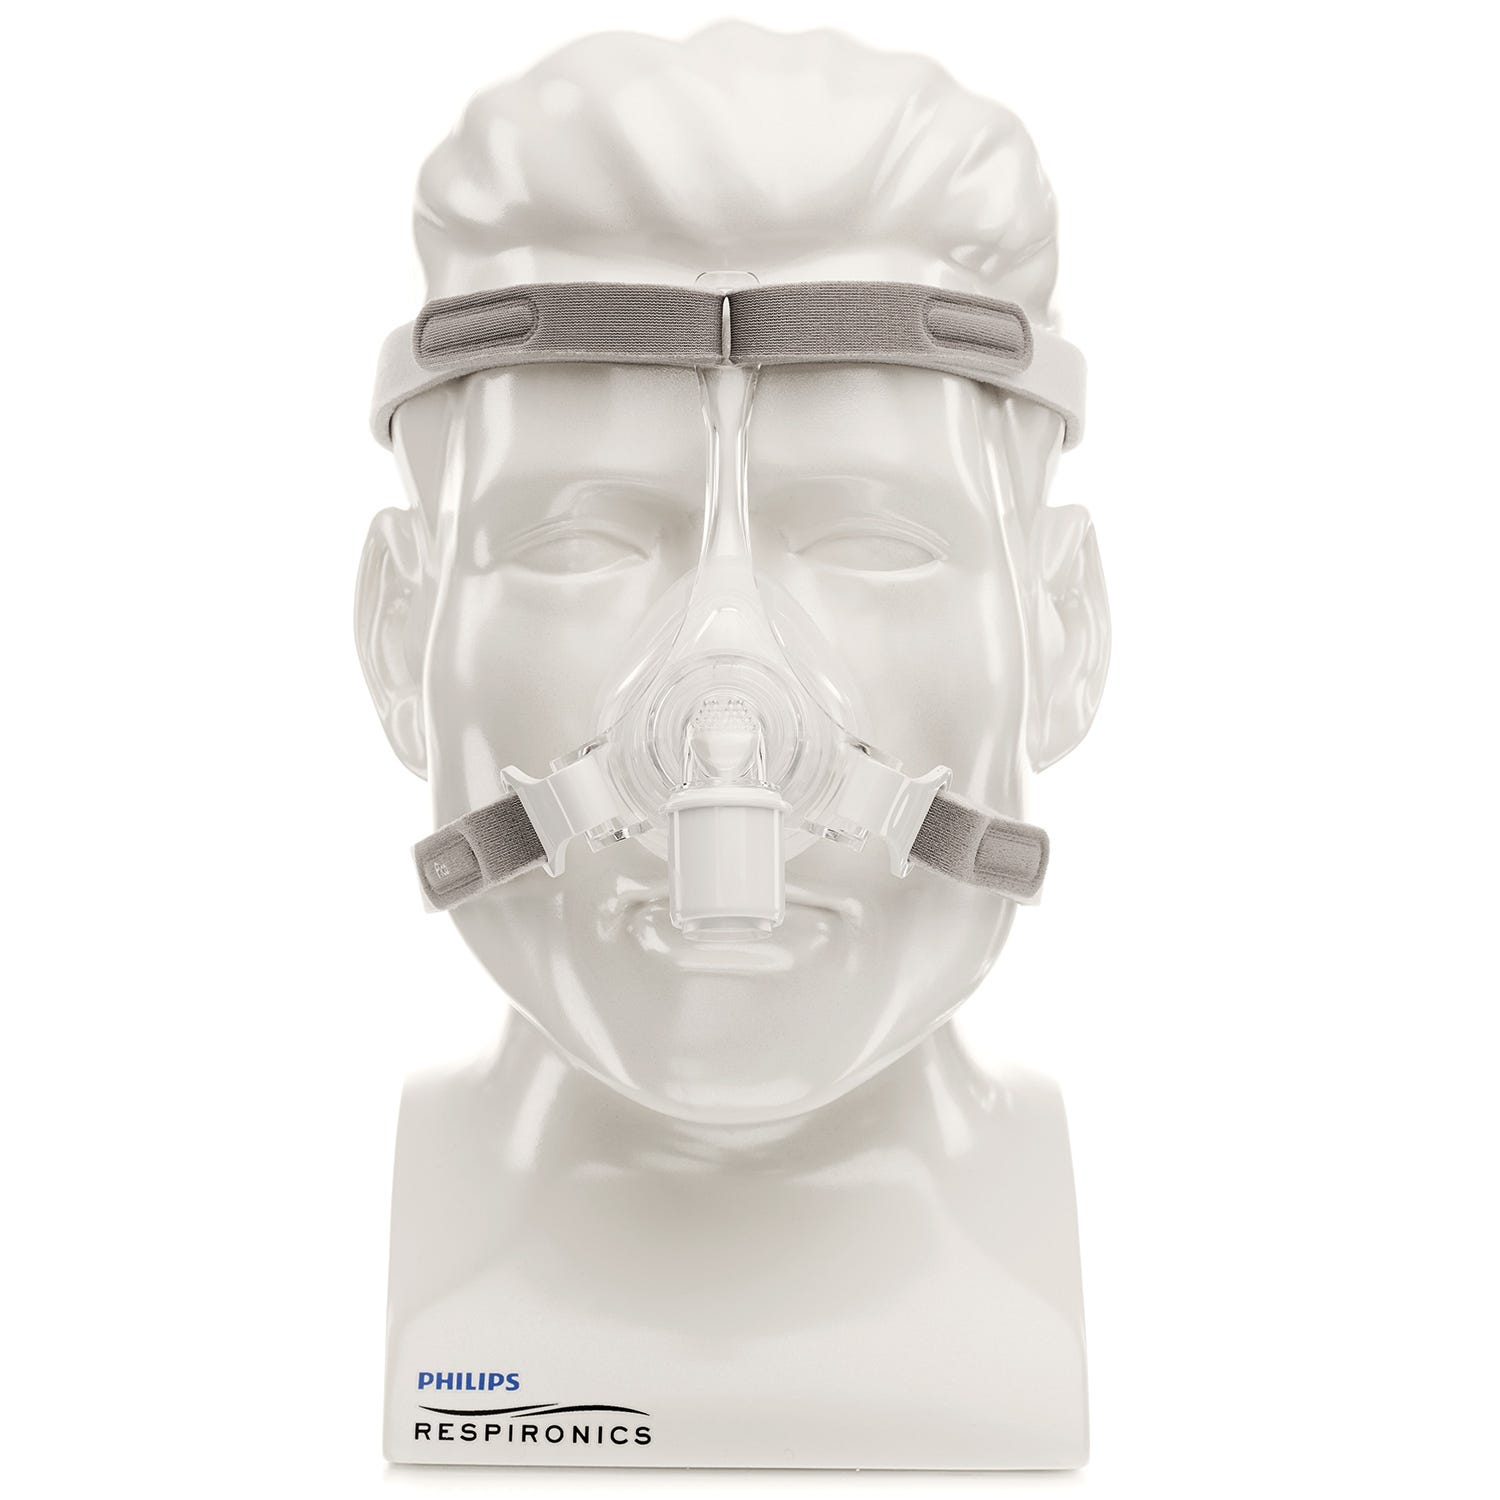 Philips Respironics Complete Pico Nasal Mask